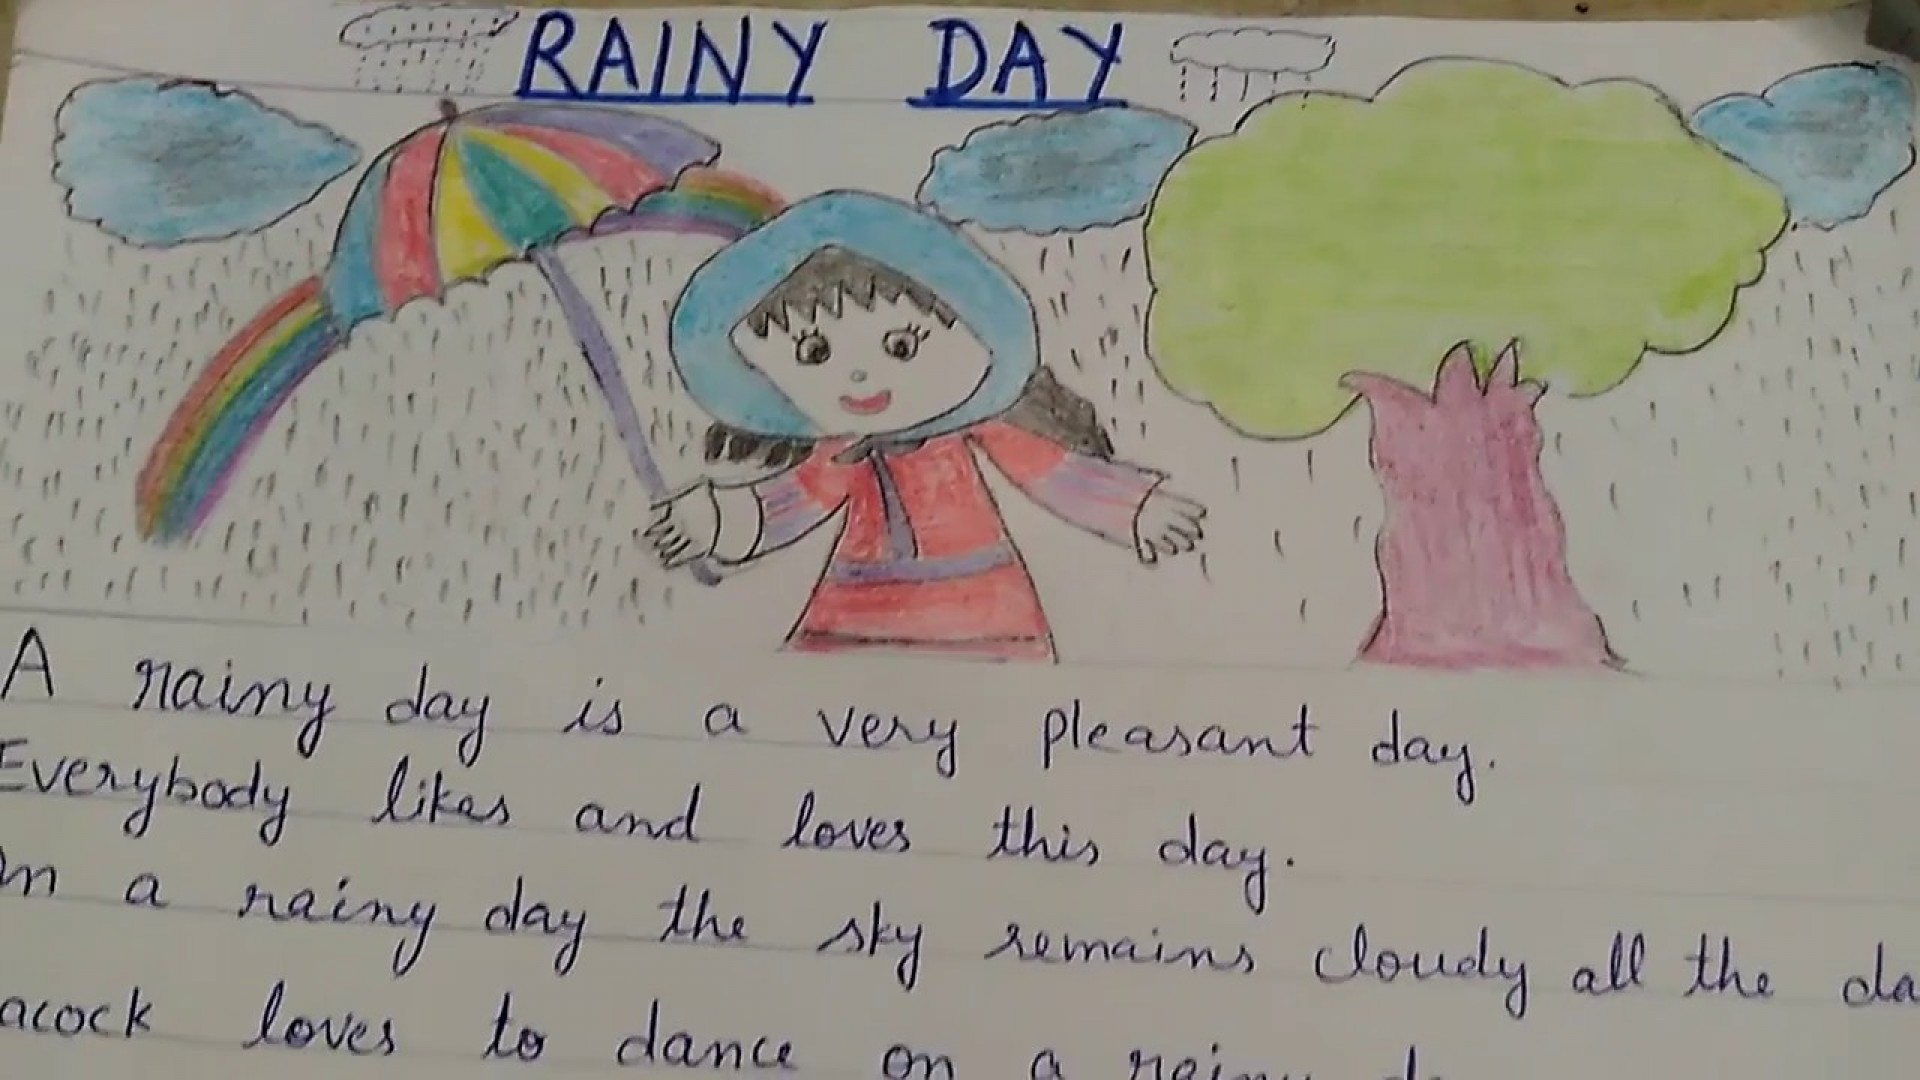 006 Rainy Day Essay English Maxresdefault Stupendous My In For Class 6 10 1920